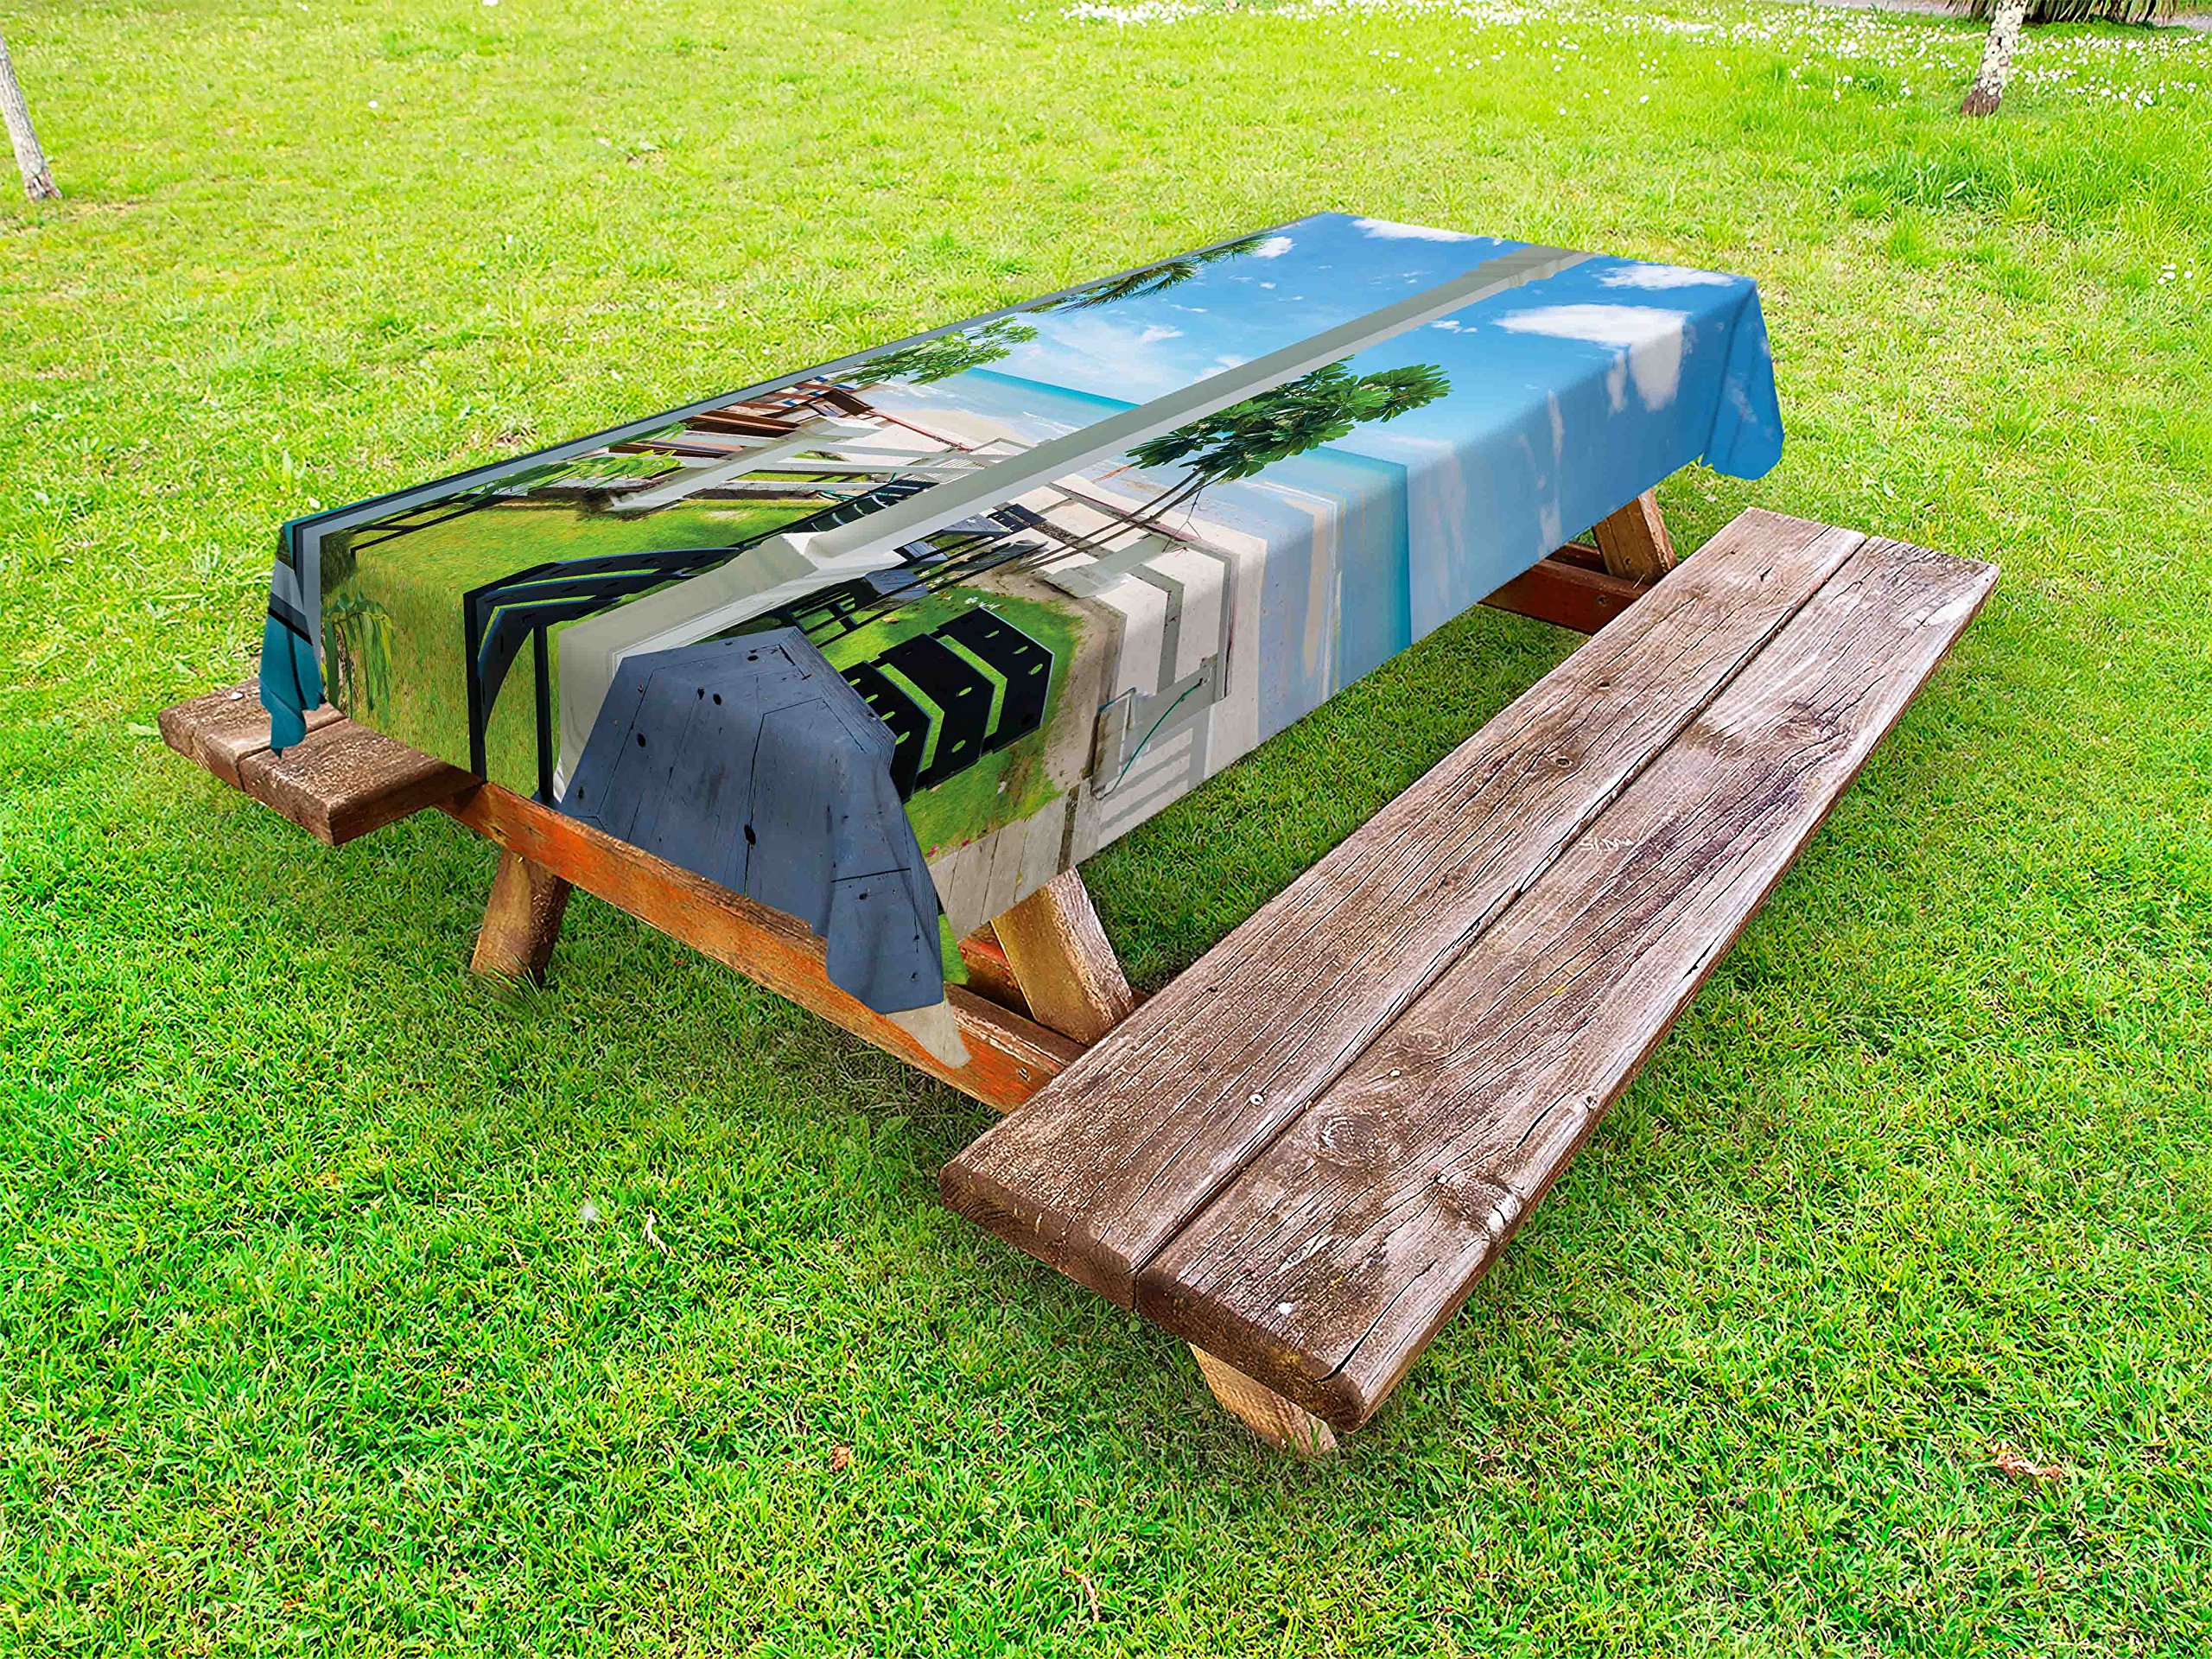 Lunarable Coastal Outdoor Tablecloth, Outdoor Wood Chairs and Tables by The Sea Trees Greenery Summer Villa Print, Decorative Washable Picnic Table Cloth, 58 X 120 inches, Green Blue White